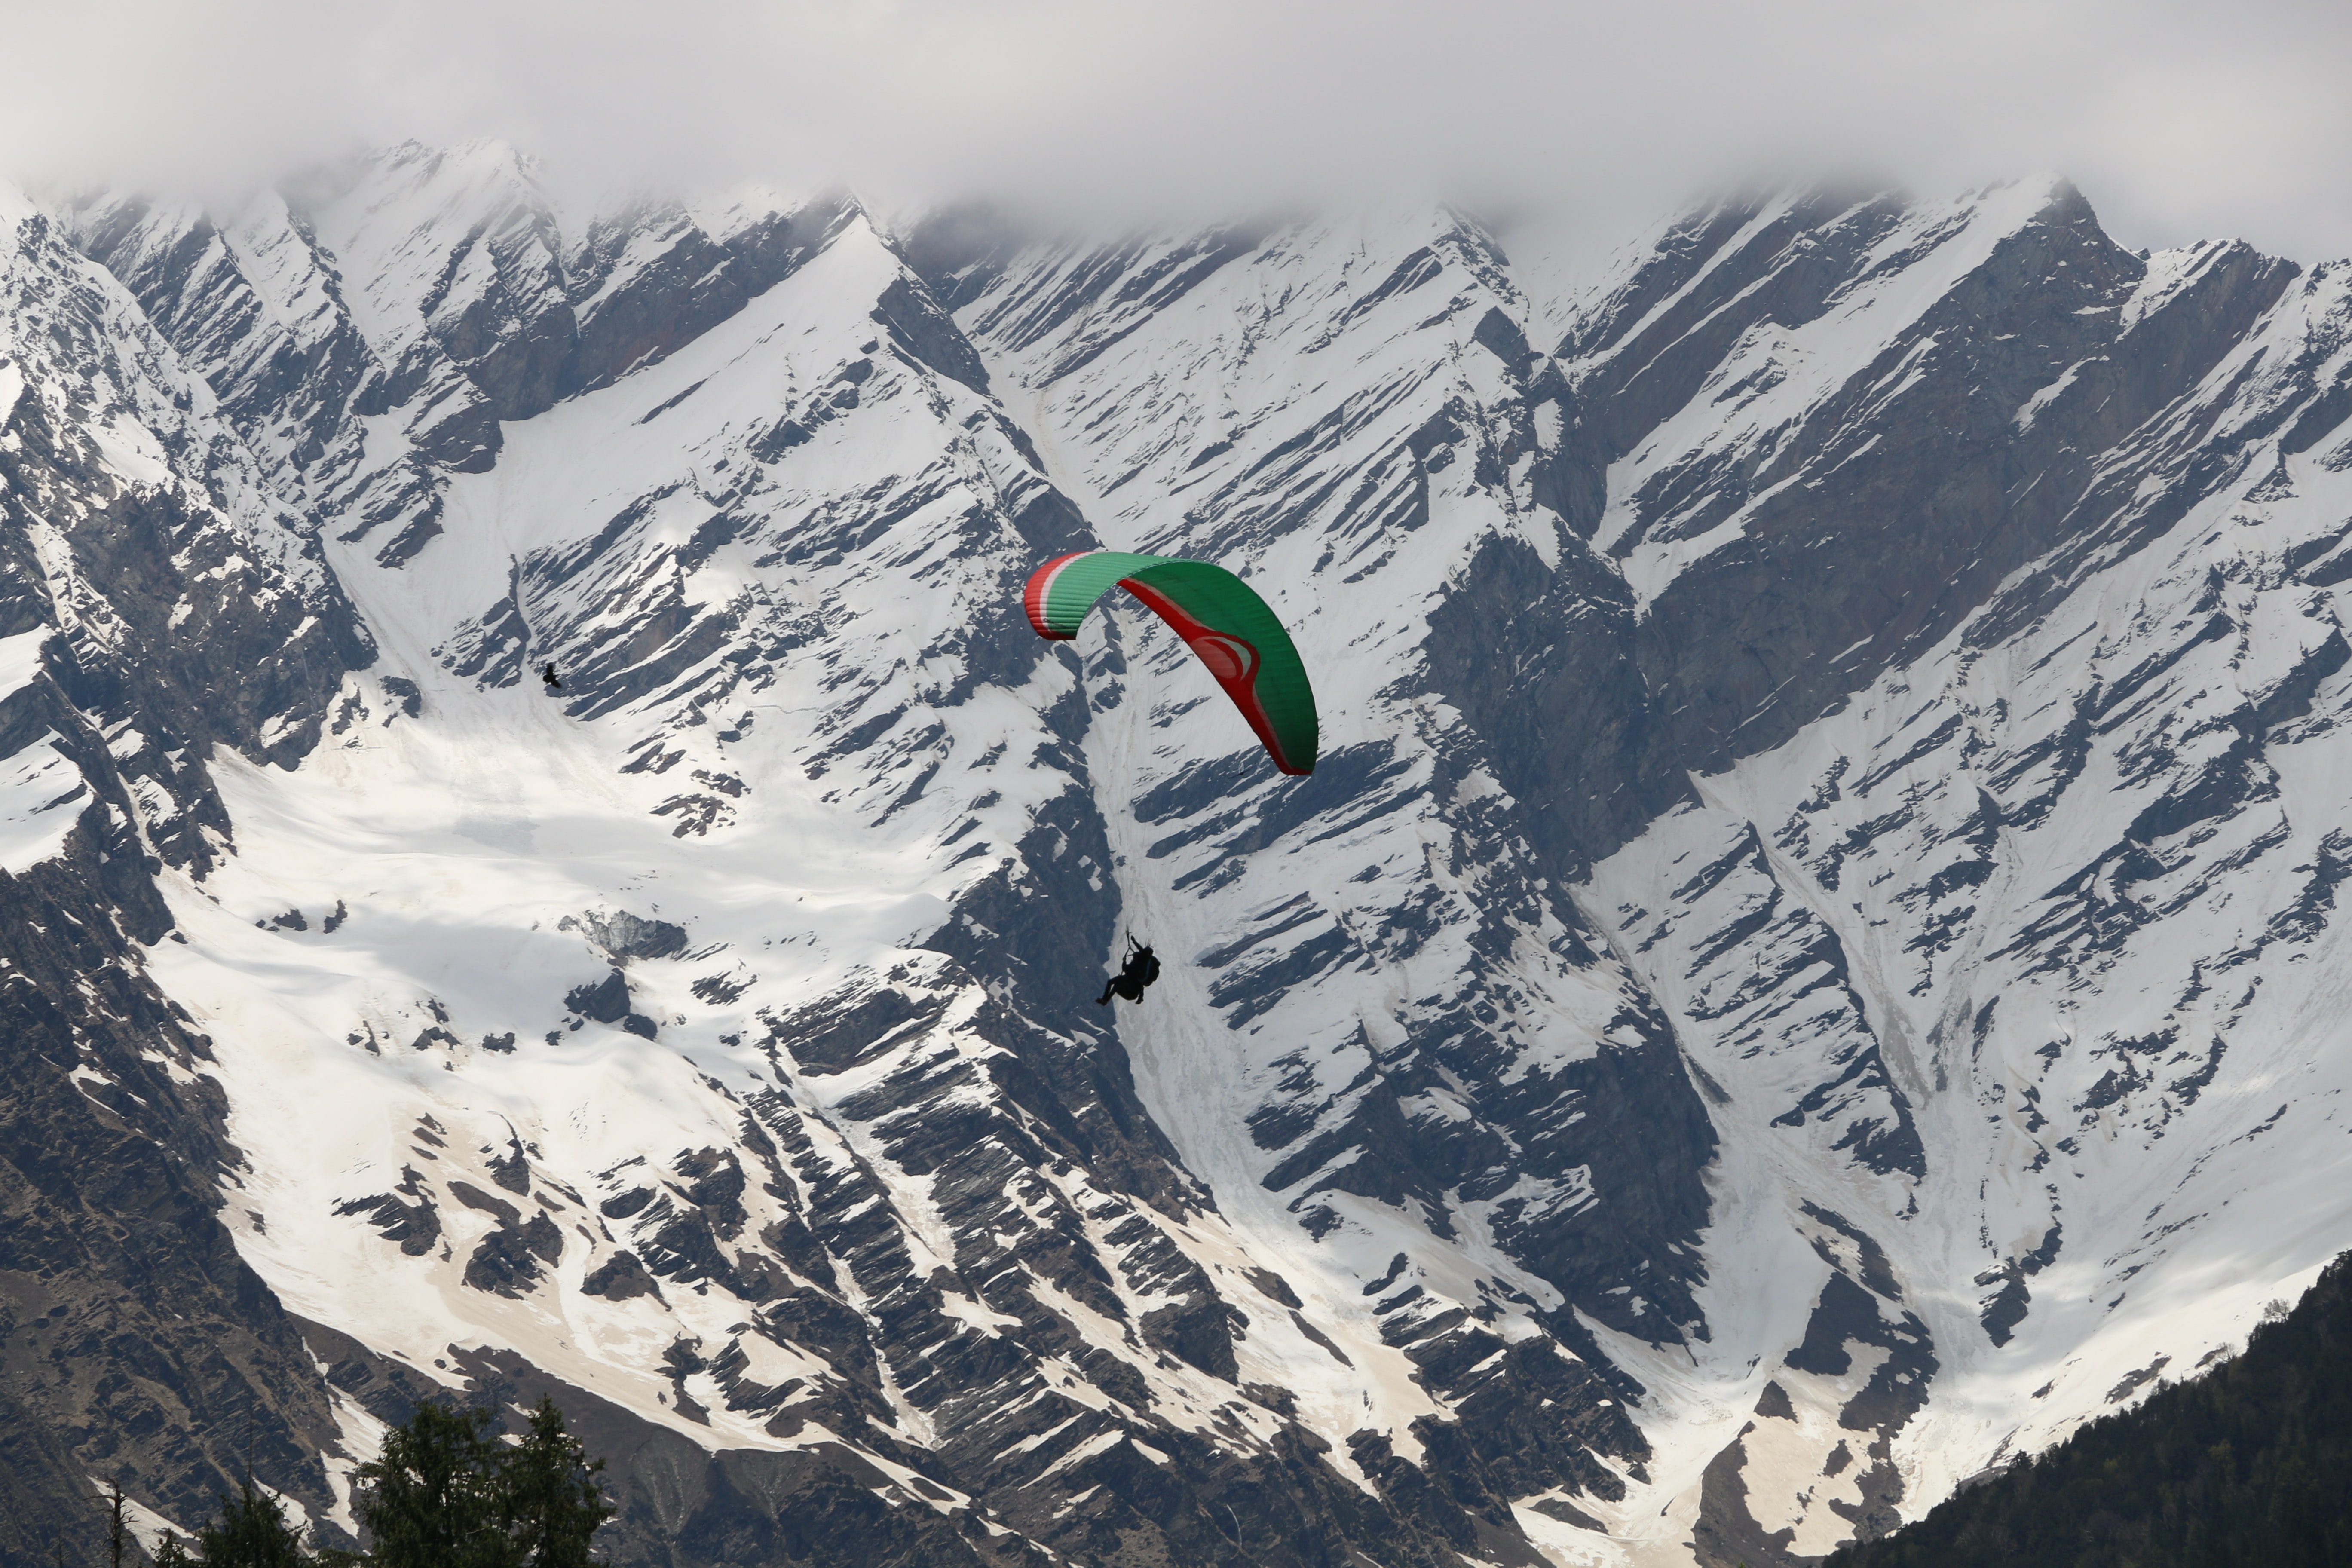 Extreme sports fanatic parachutes over a snowy mountain landscape